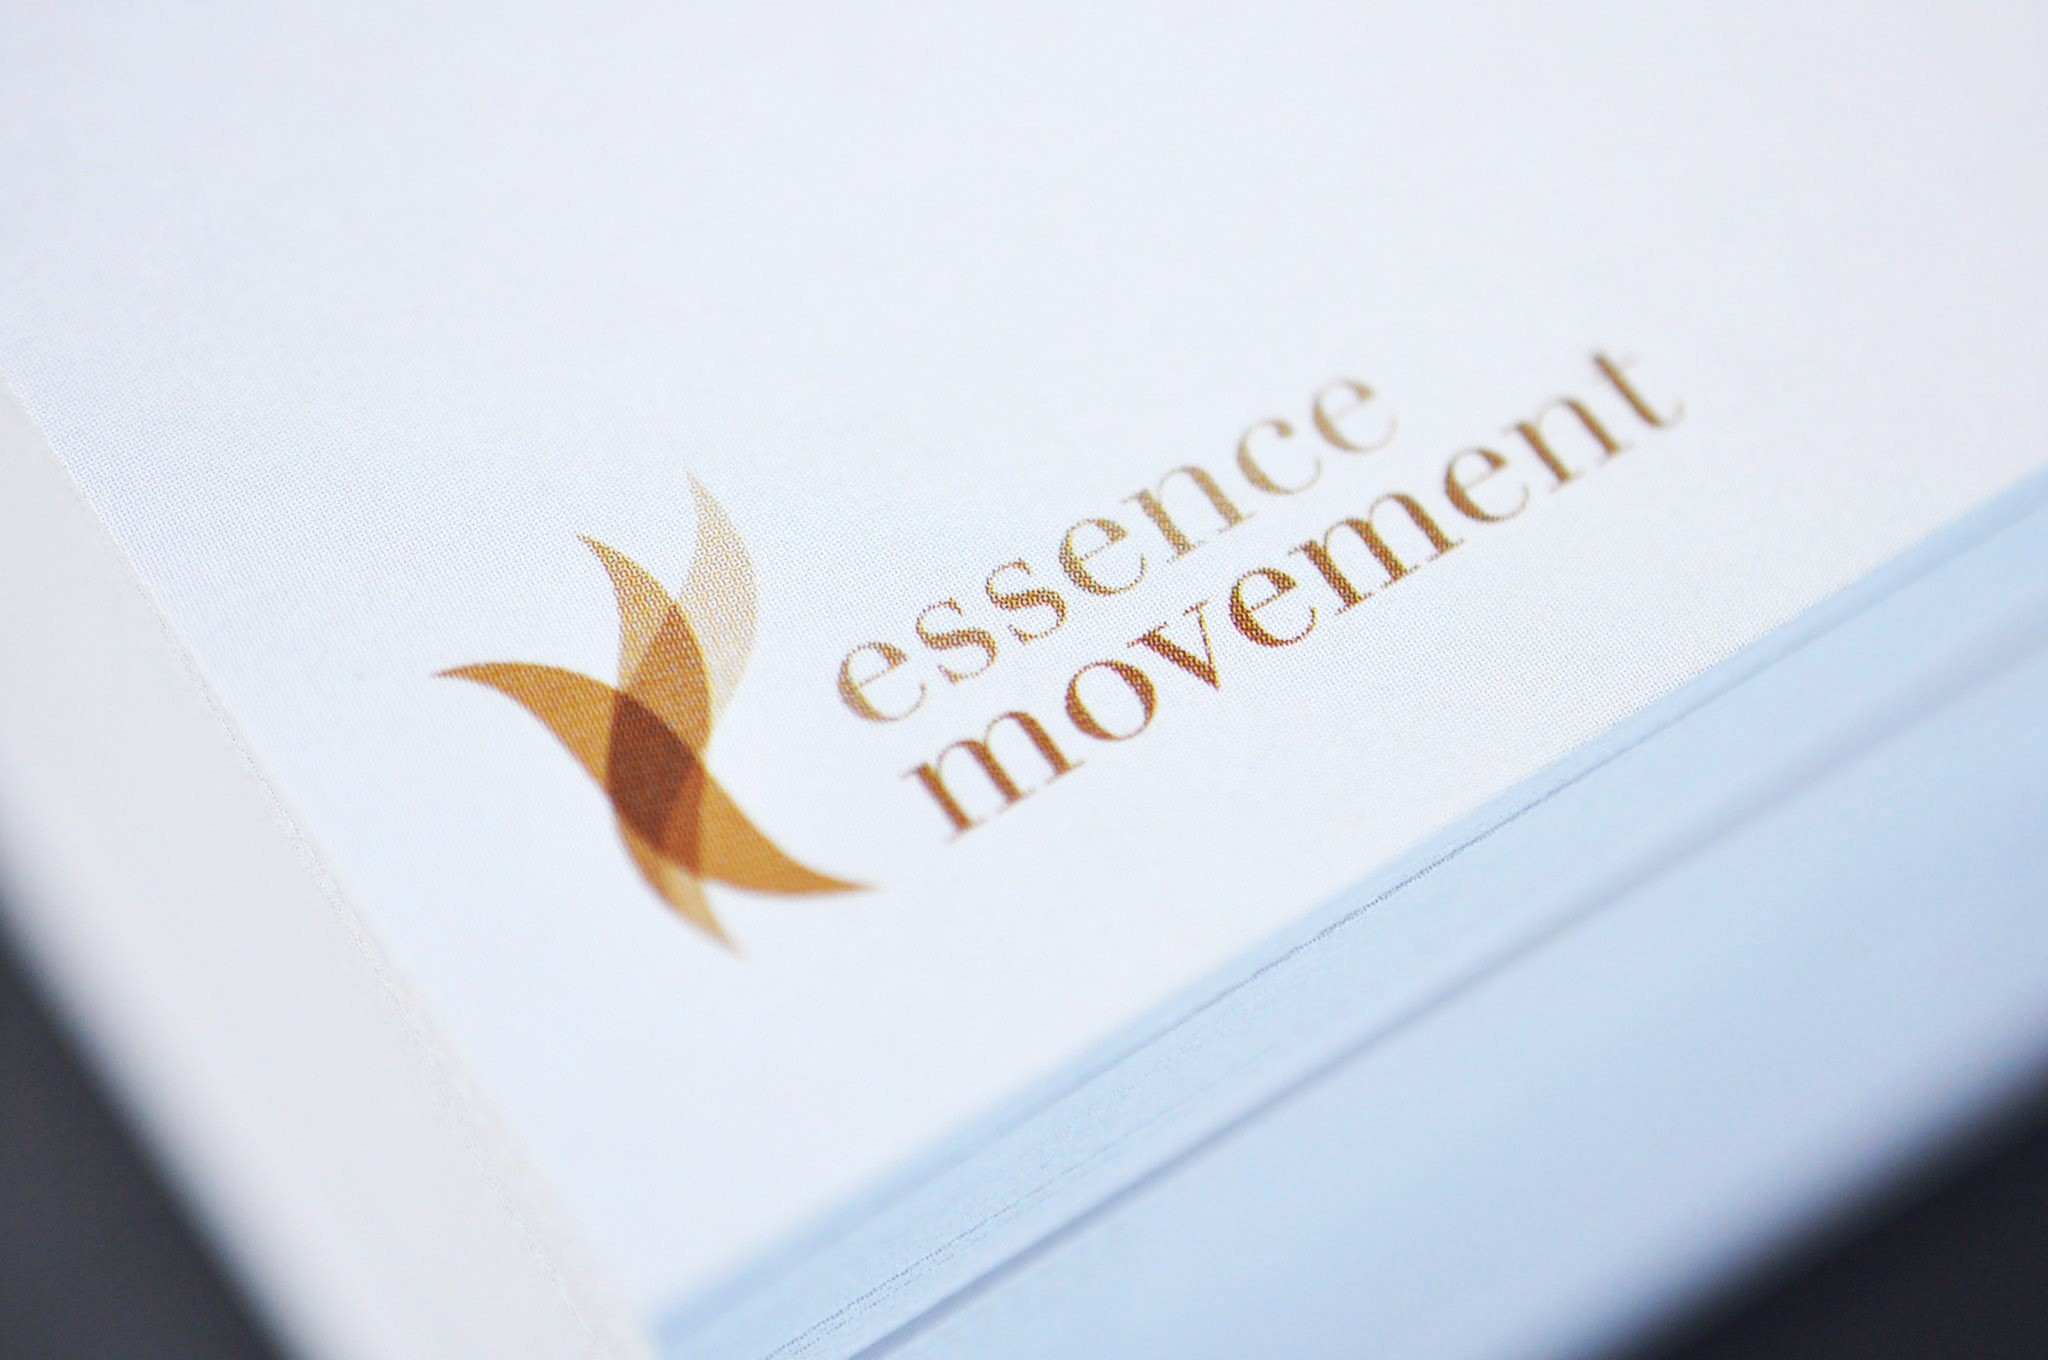 Essence Movement